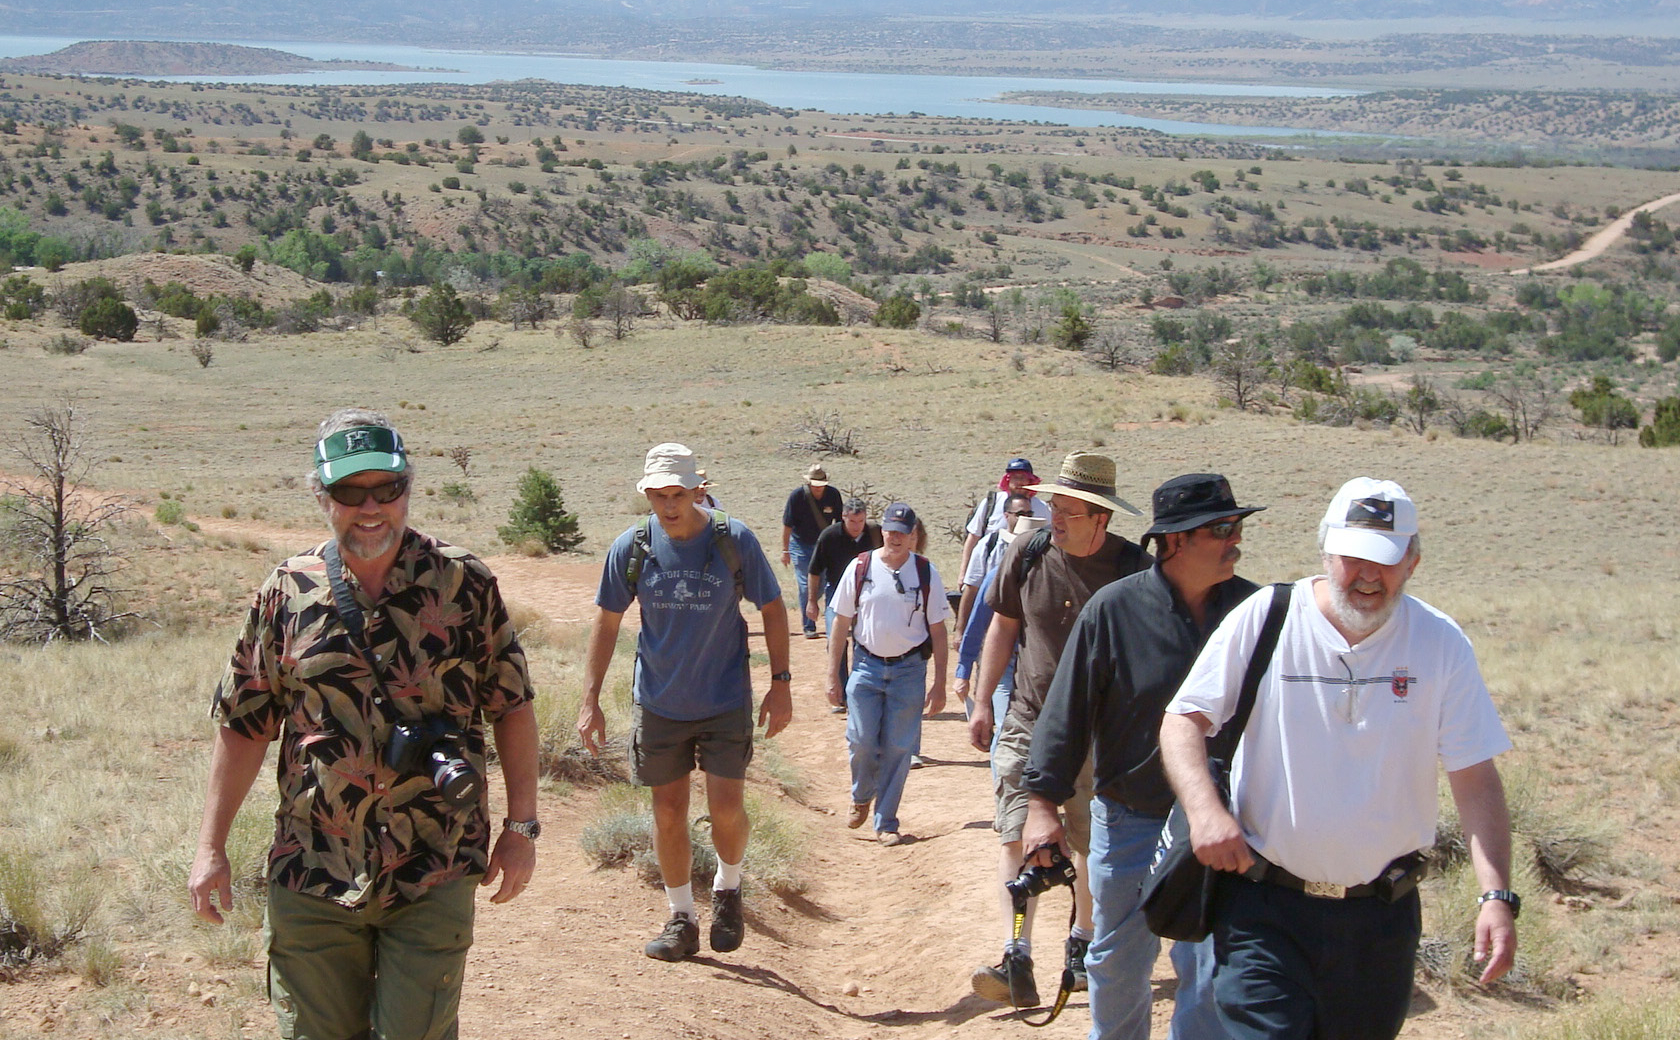 In this image, the Mars Science Laboratory Project Science Group, consisting of 11 men and 1 woman, are climbing up a dusty trail in New Mexico.  Wearing casual hiking clothes and hats, they are climbing towards the photographer of this image.  Behind them in the distance is a lake and mountains.